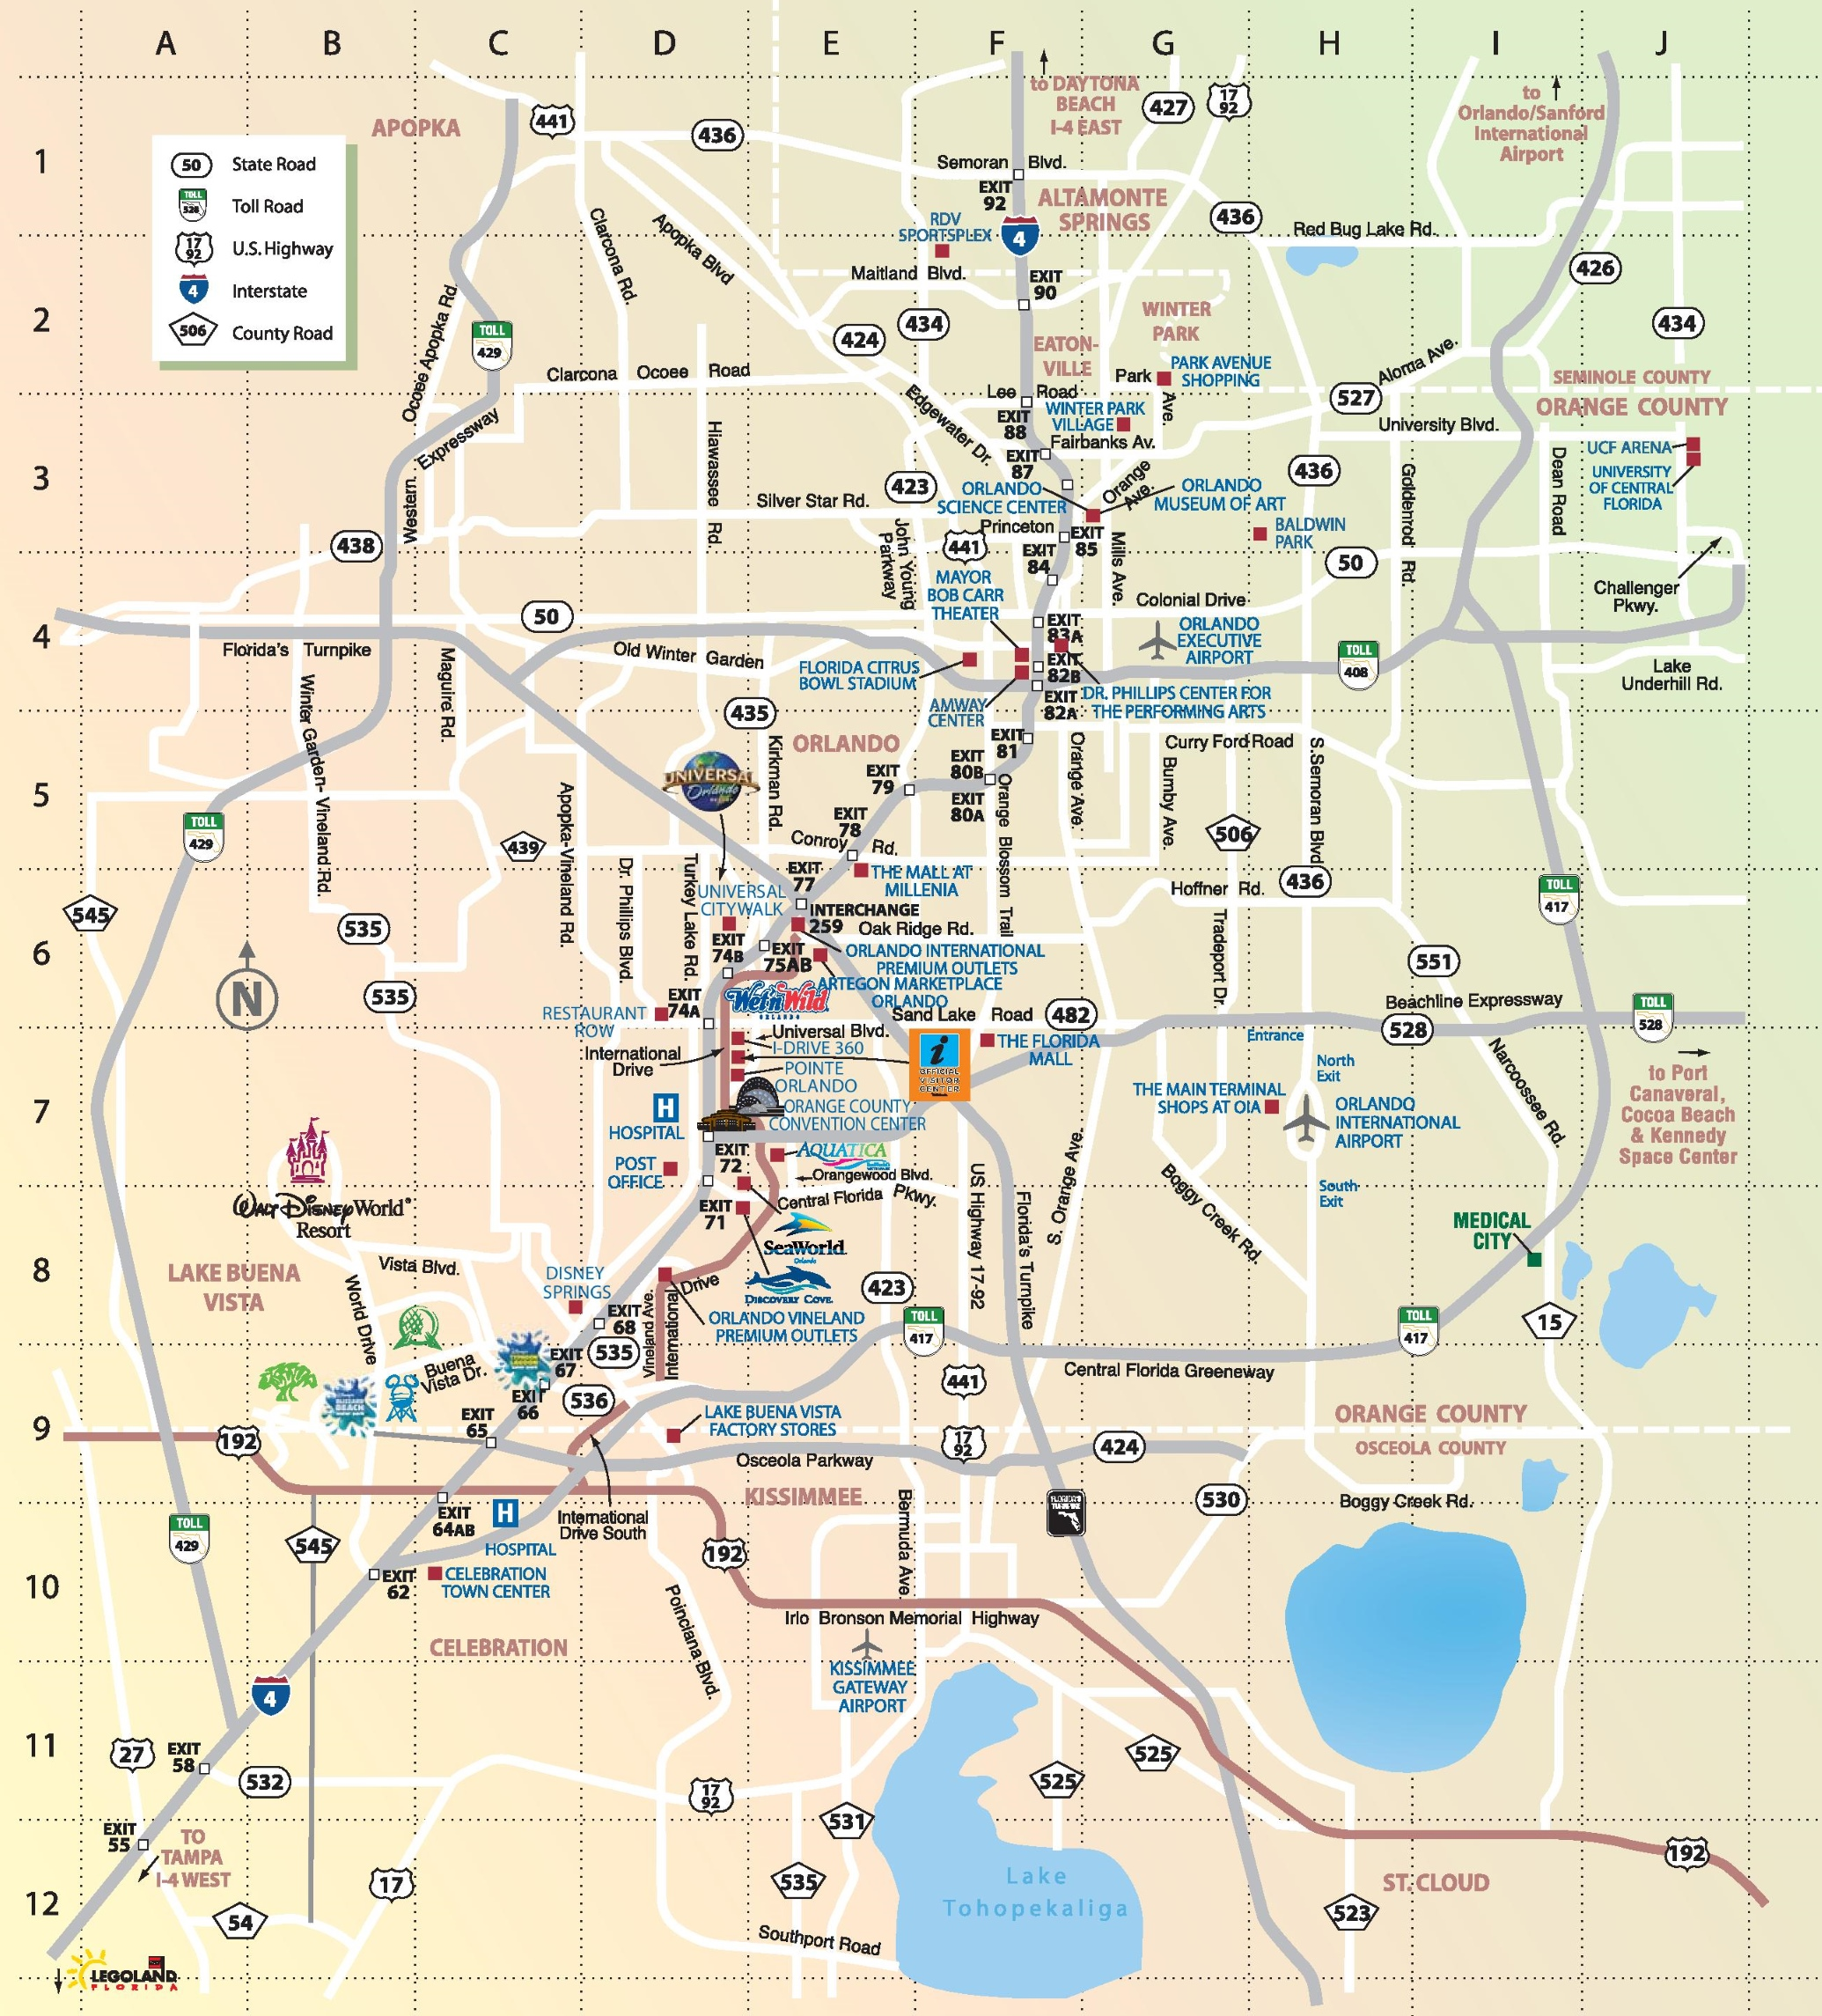 Map Of Orlando Orlando tourist attractions map Map Of Orlando